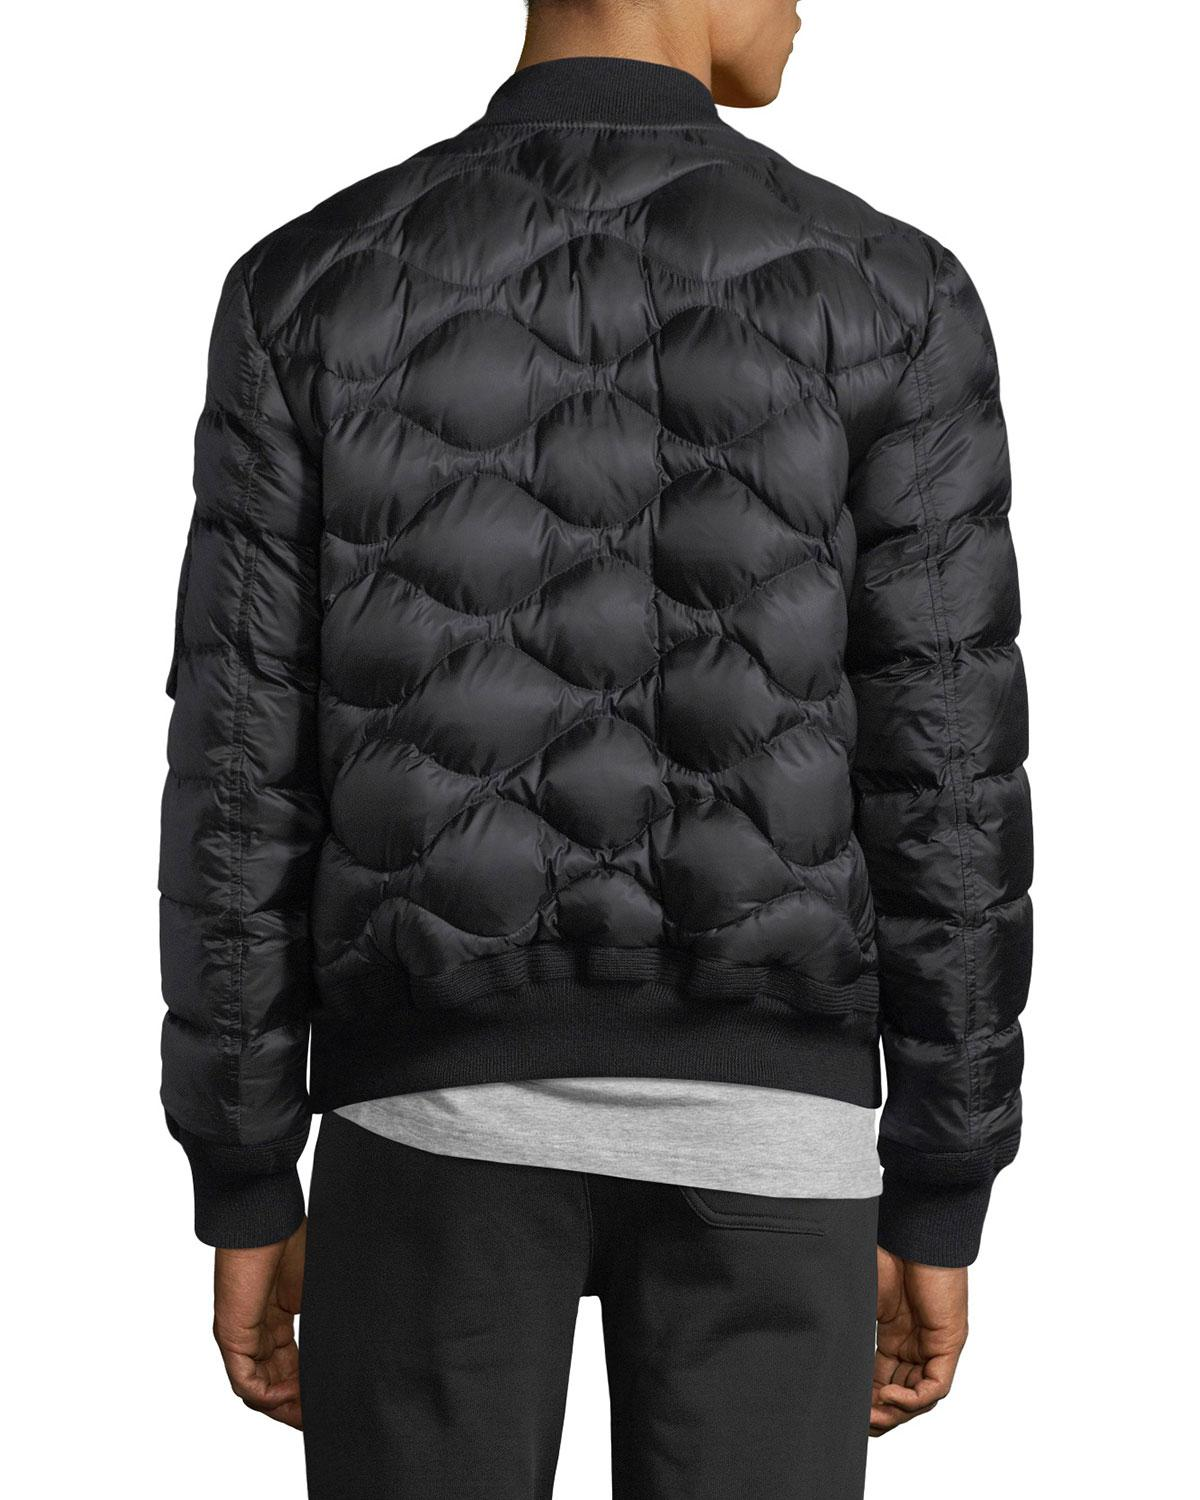 c9396cd74ae6 Lyst - Moncler Bertrand Leather Jacket in Black for Men